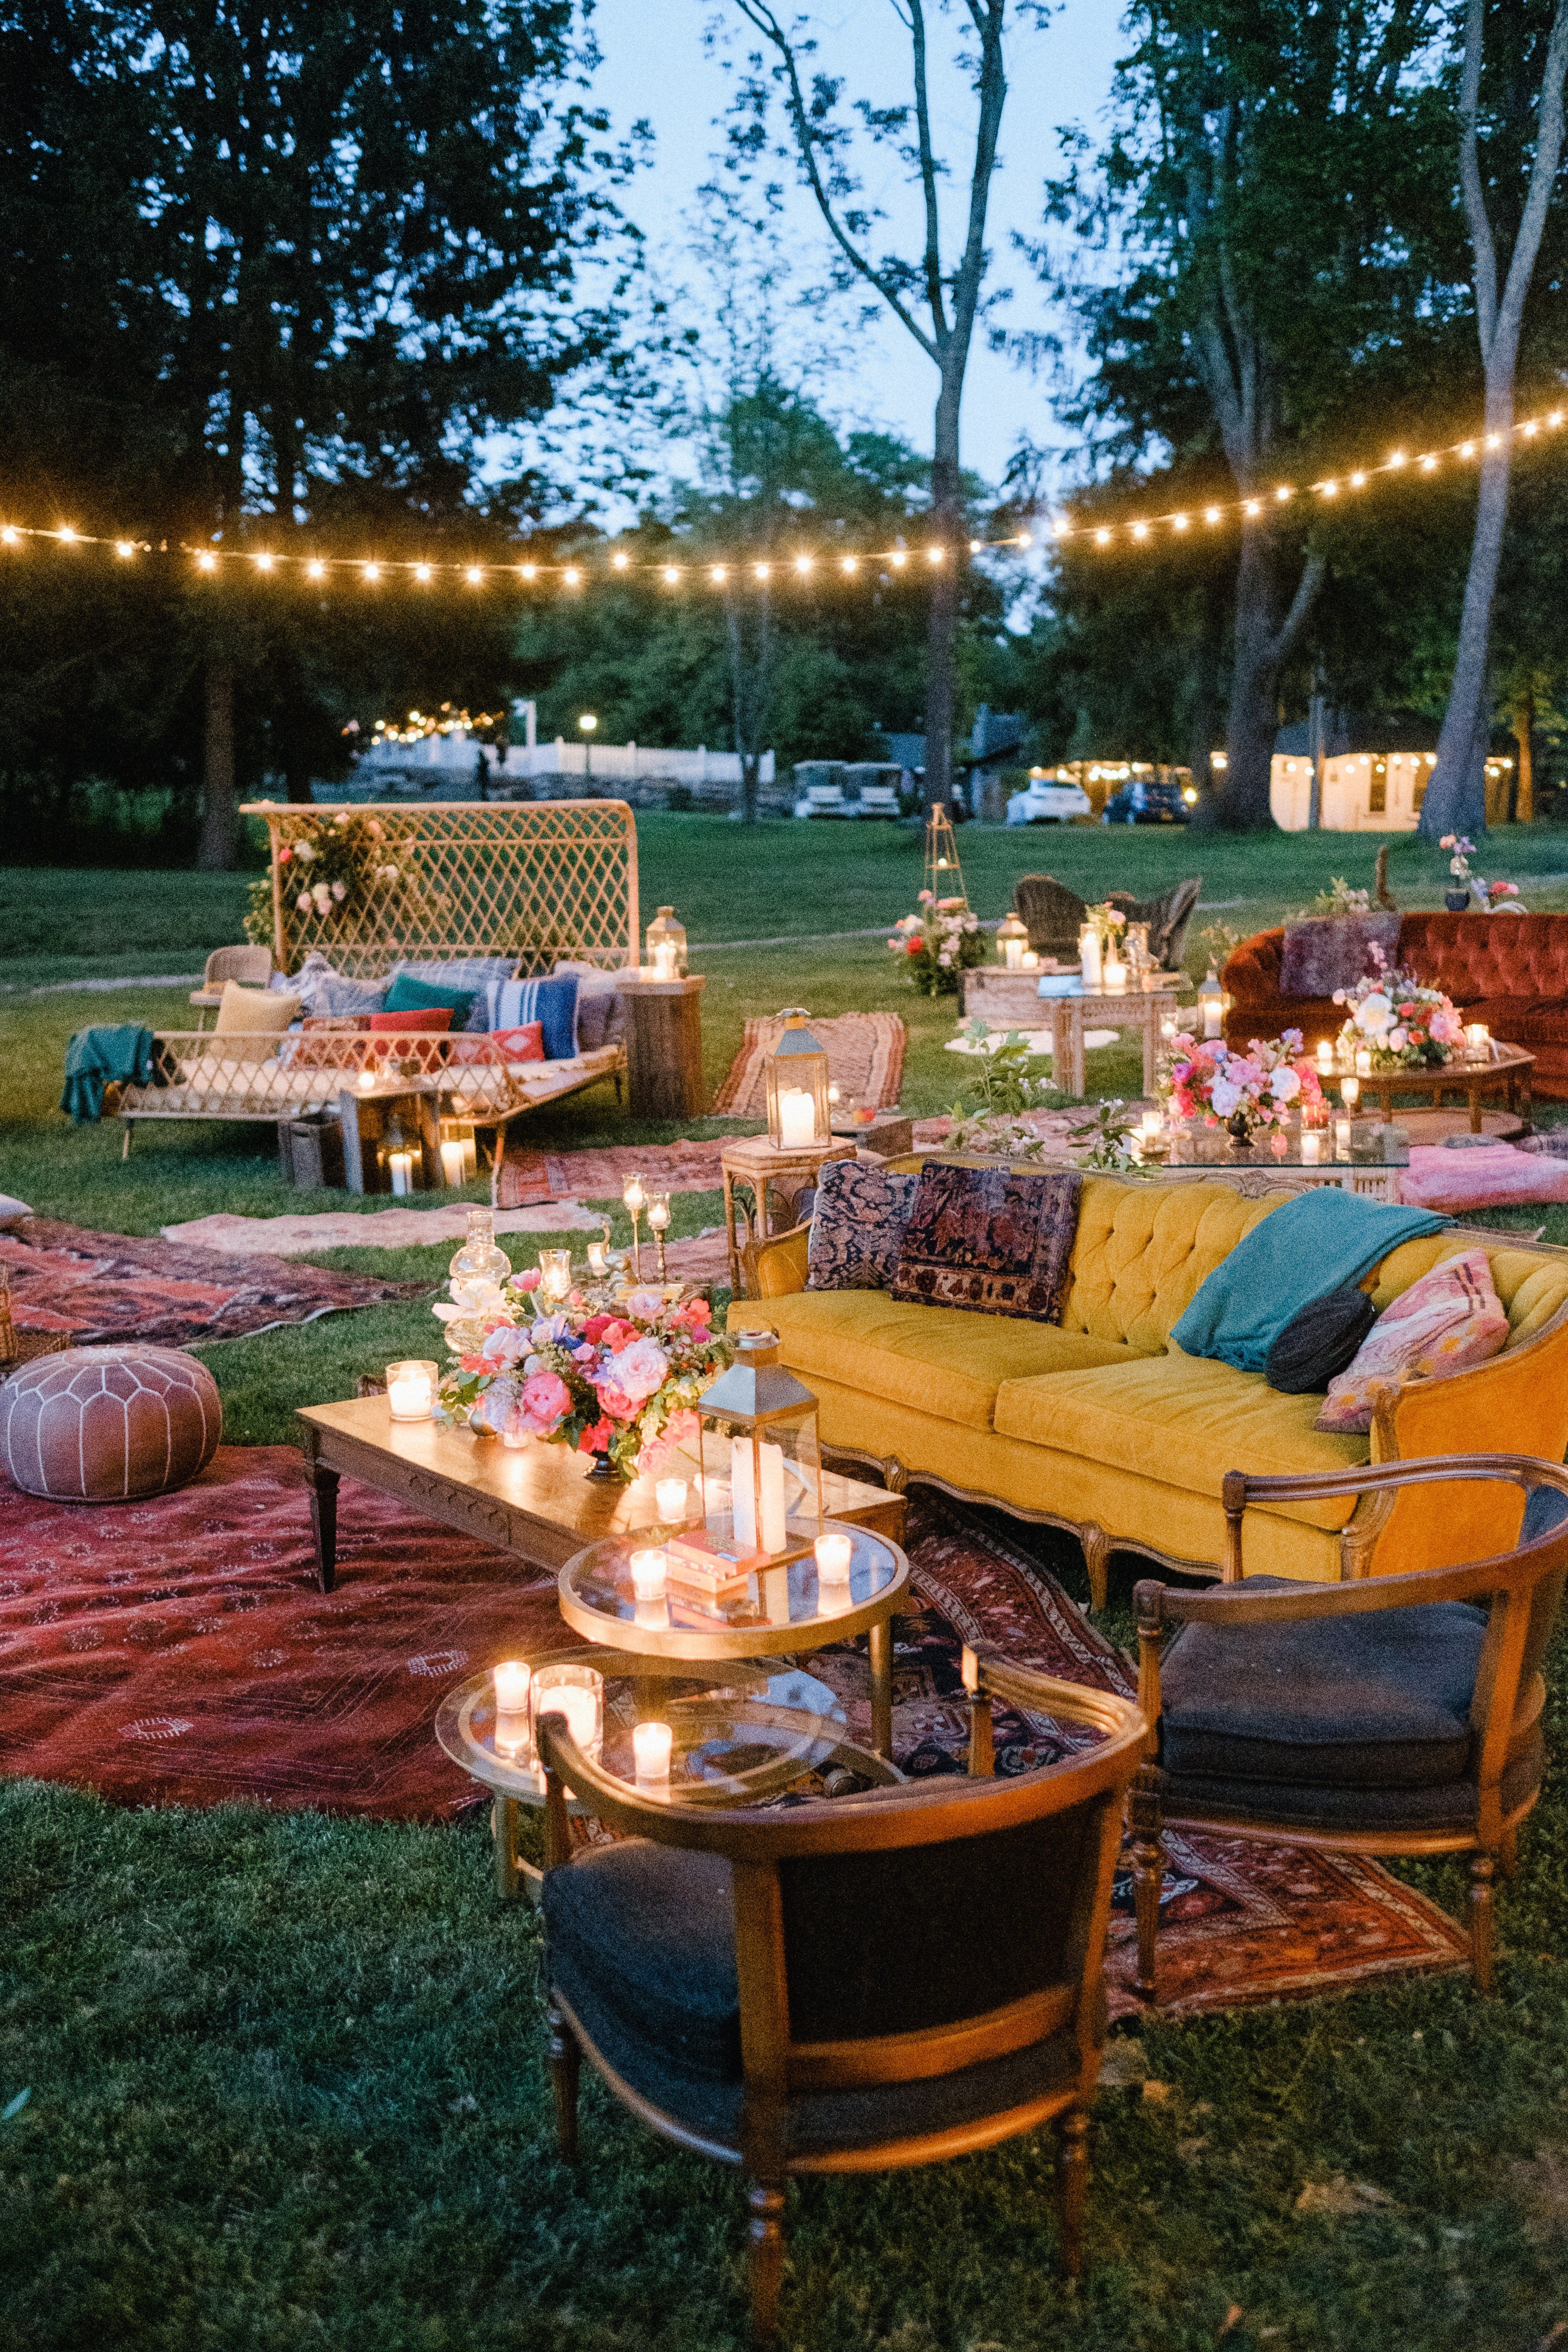 20 Ideas How to Build Backyard Engagement Party (Some of the Coolest Tricks) - Simphome